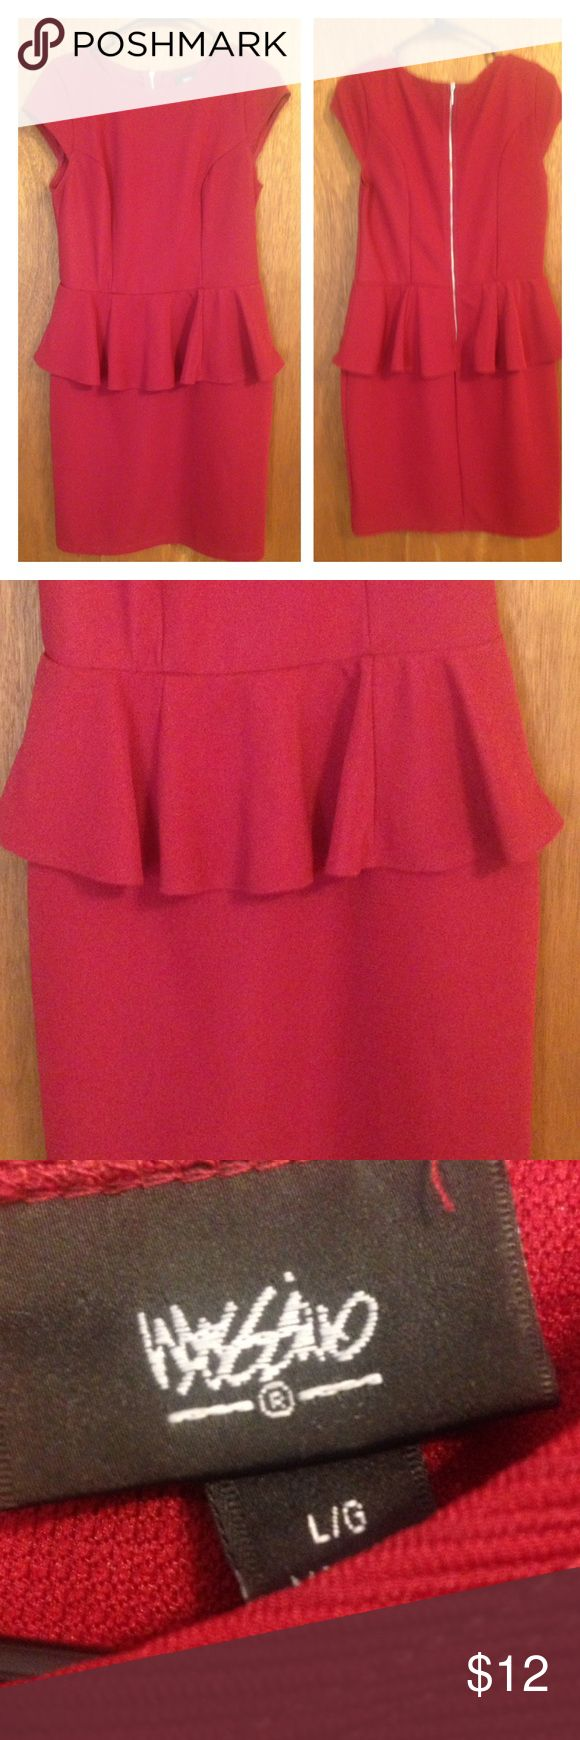 Mossimo red peplum dress size large. Super cute red peplum dress by Mossimo in size large. Mossimo Supply Co. Dresses Midi